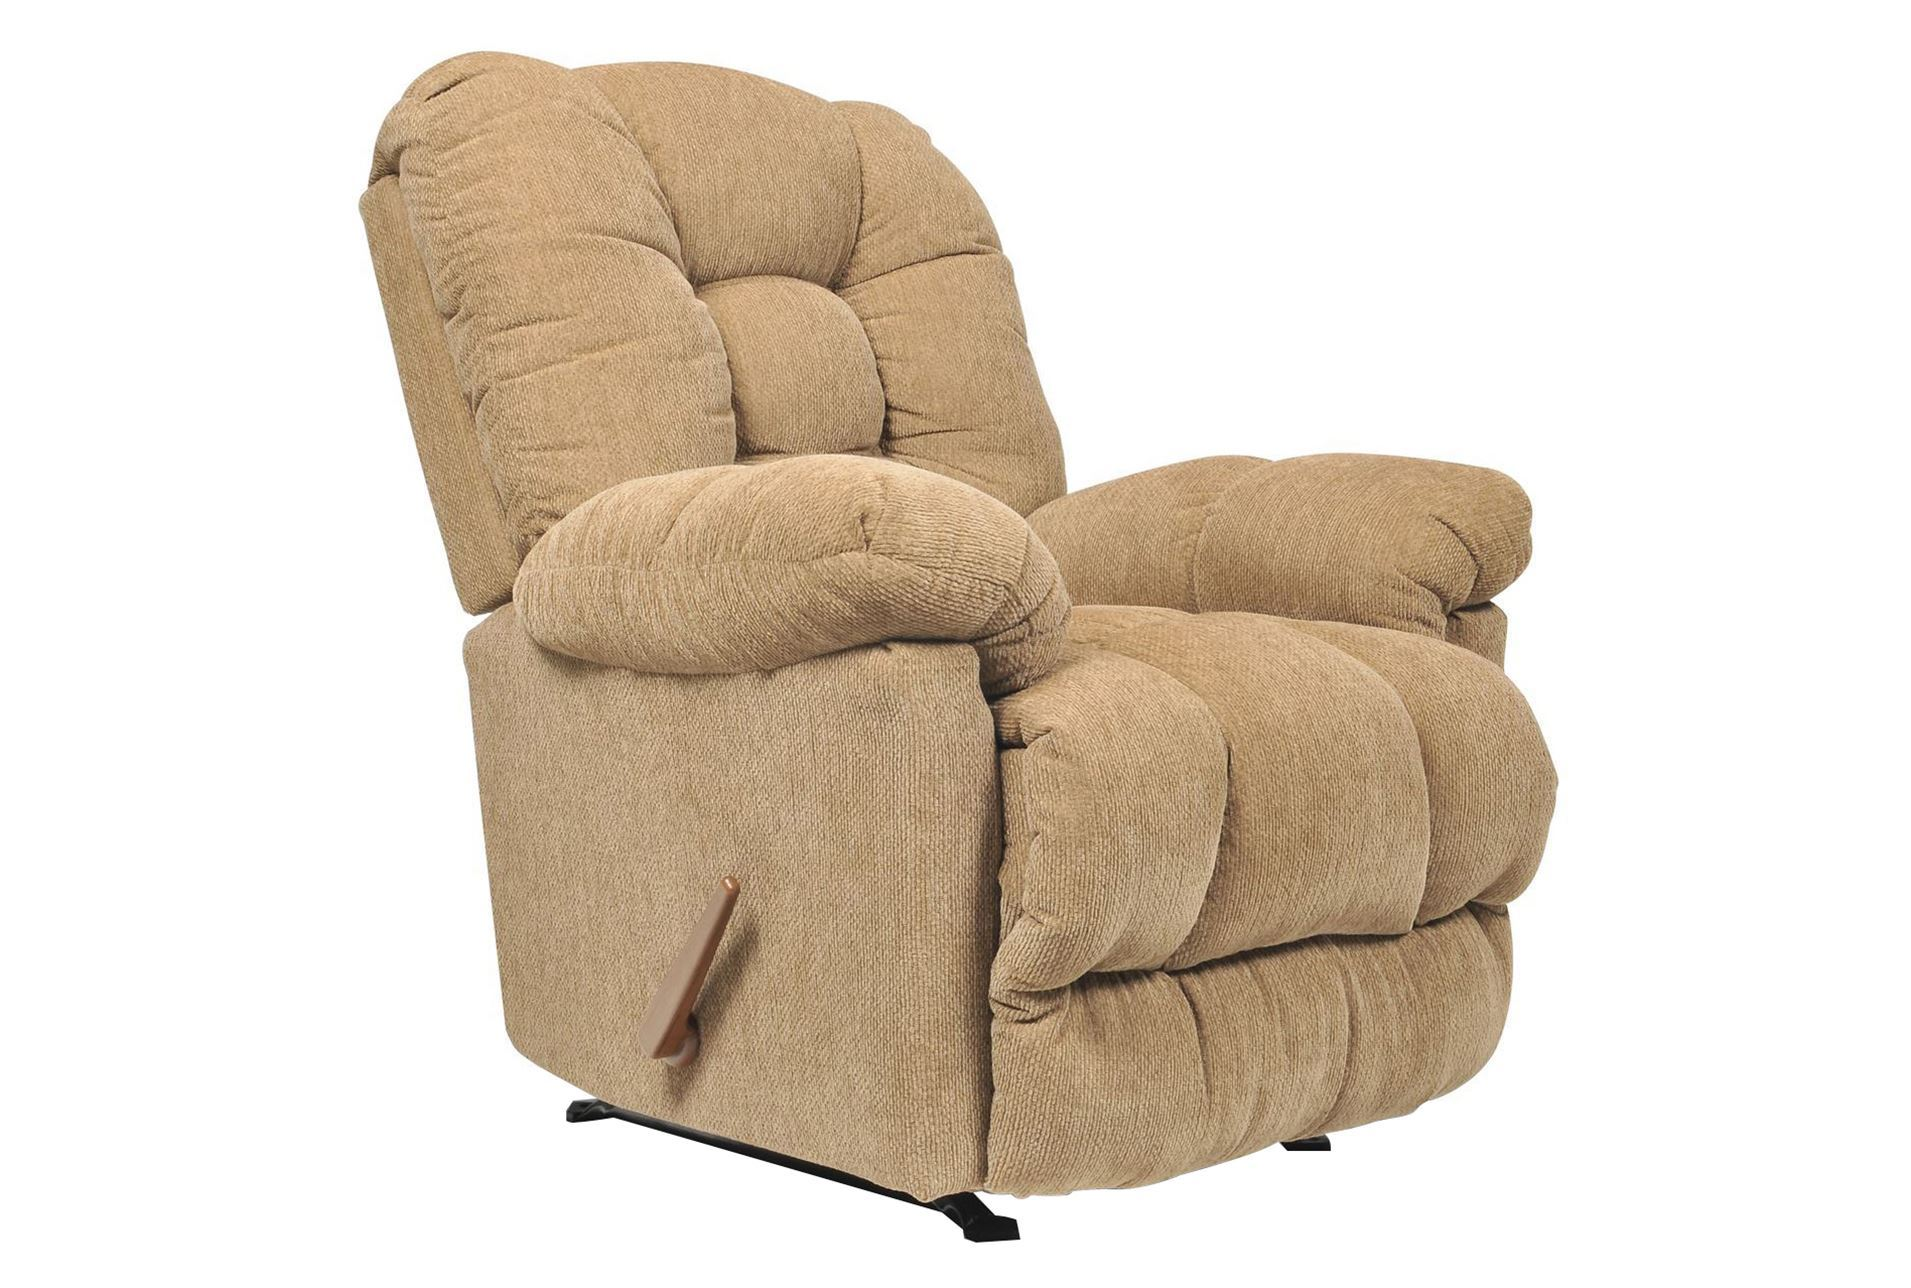 Living Spaces Recliners : Orlando Rocker Recliner - Living Spaces